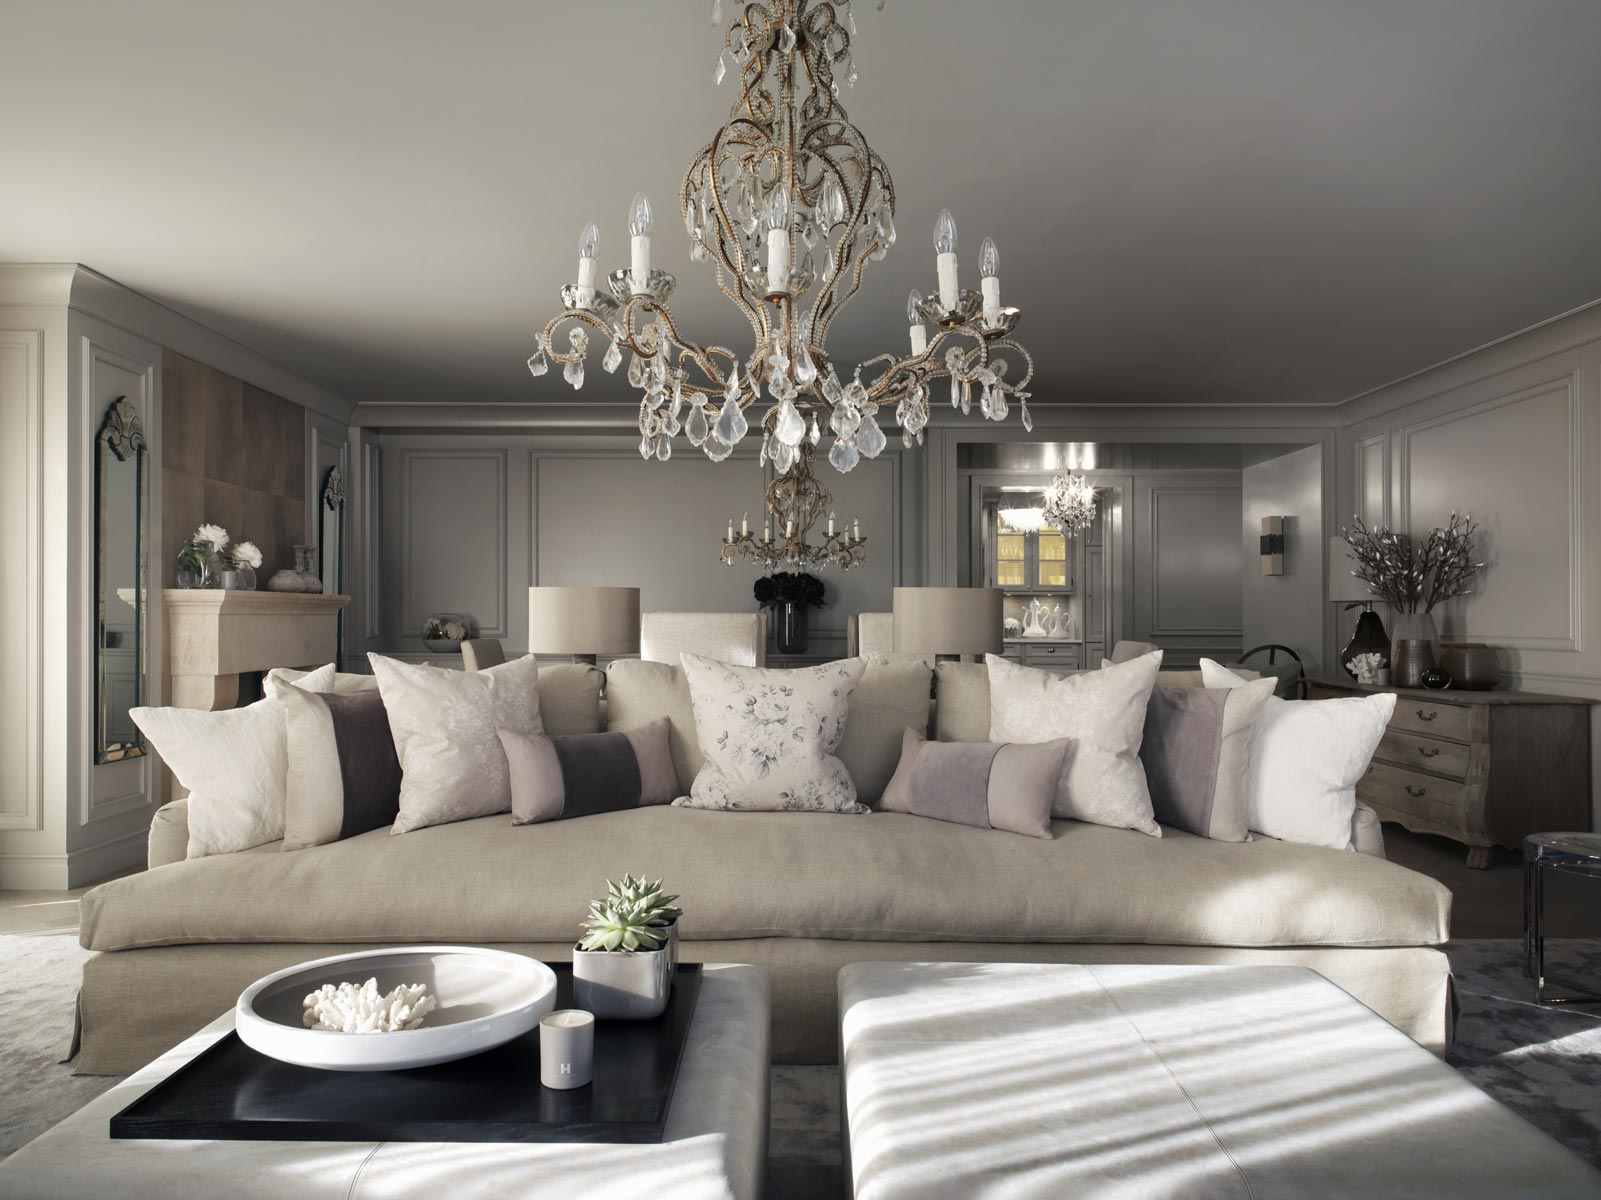 Top 10 kelly hoppen design ideas for Top 10 interior designers